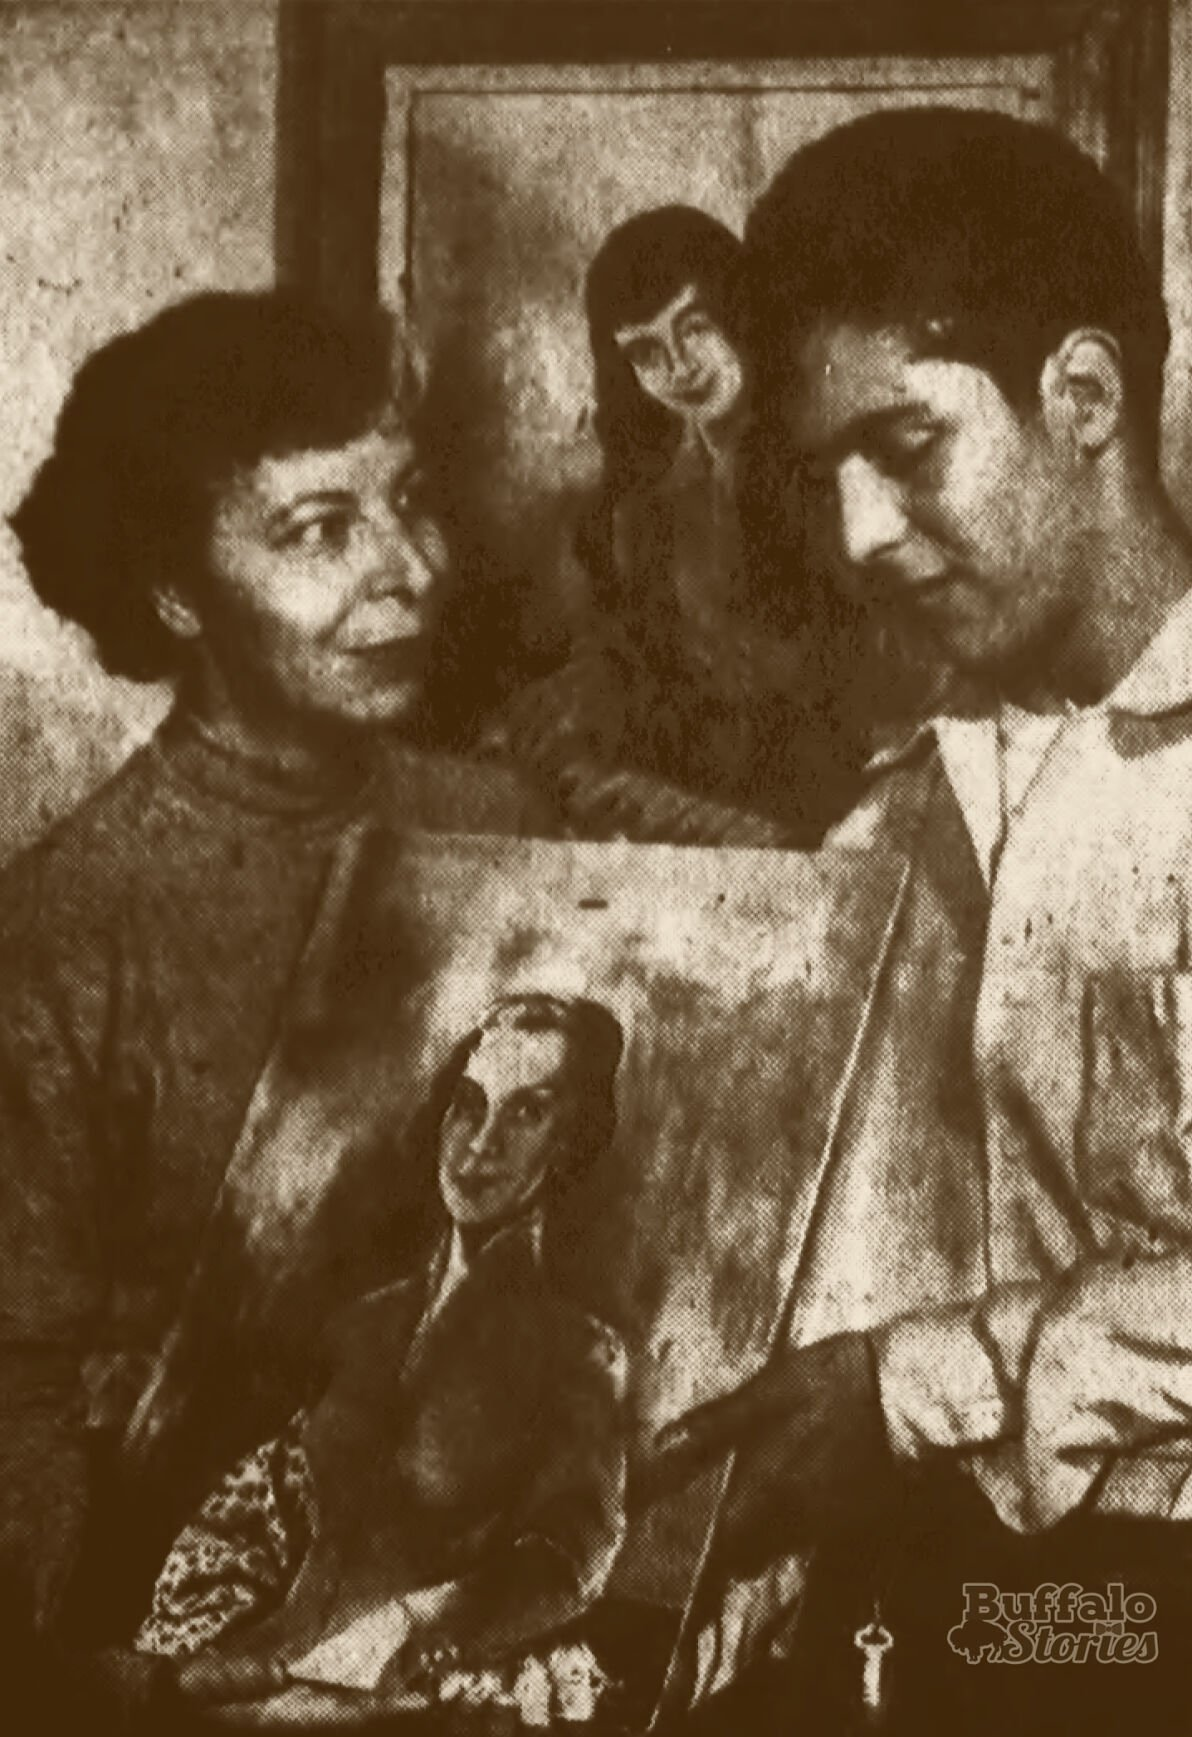 Spain Rodriguez and his mother, Buffalo artist Steve Nomi